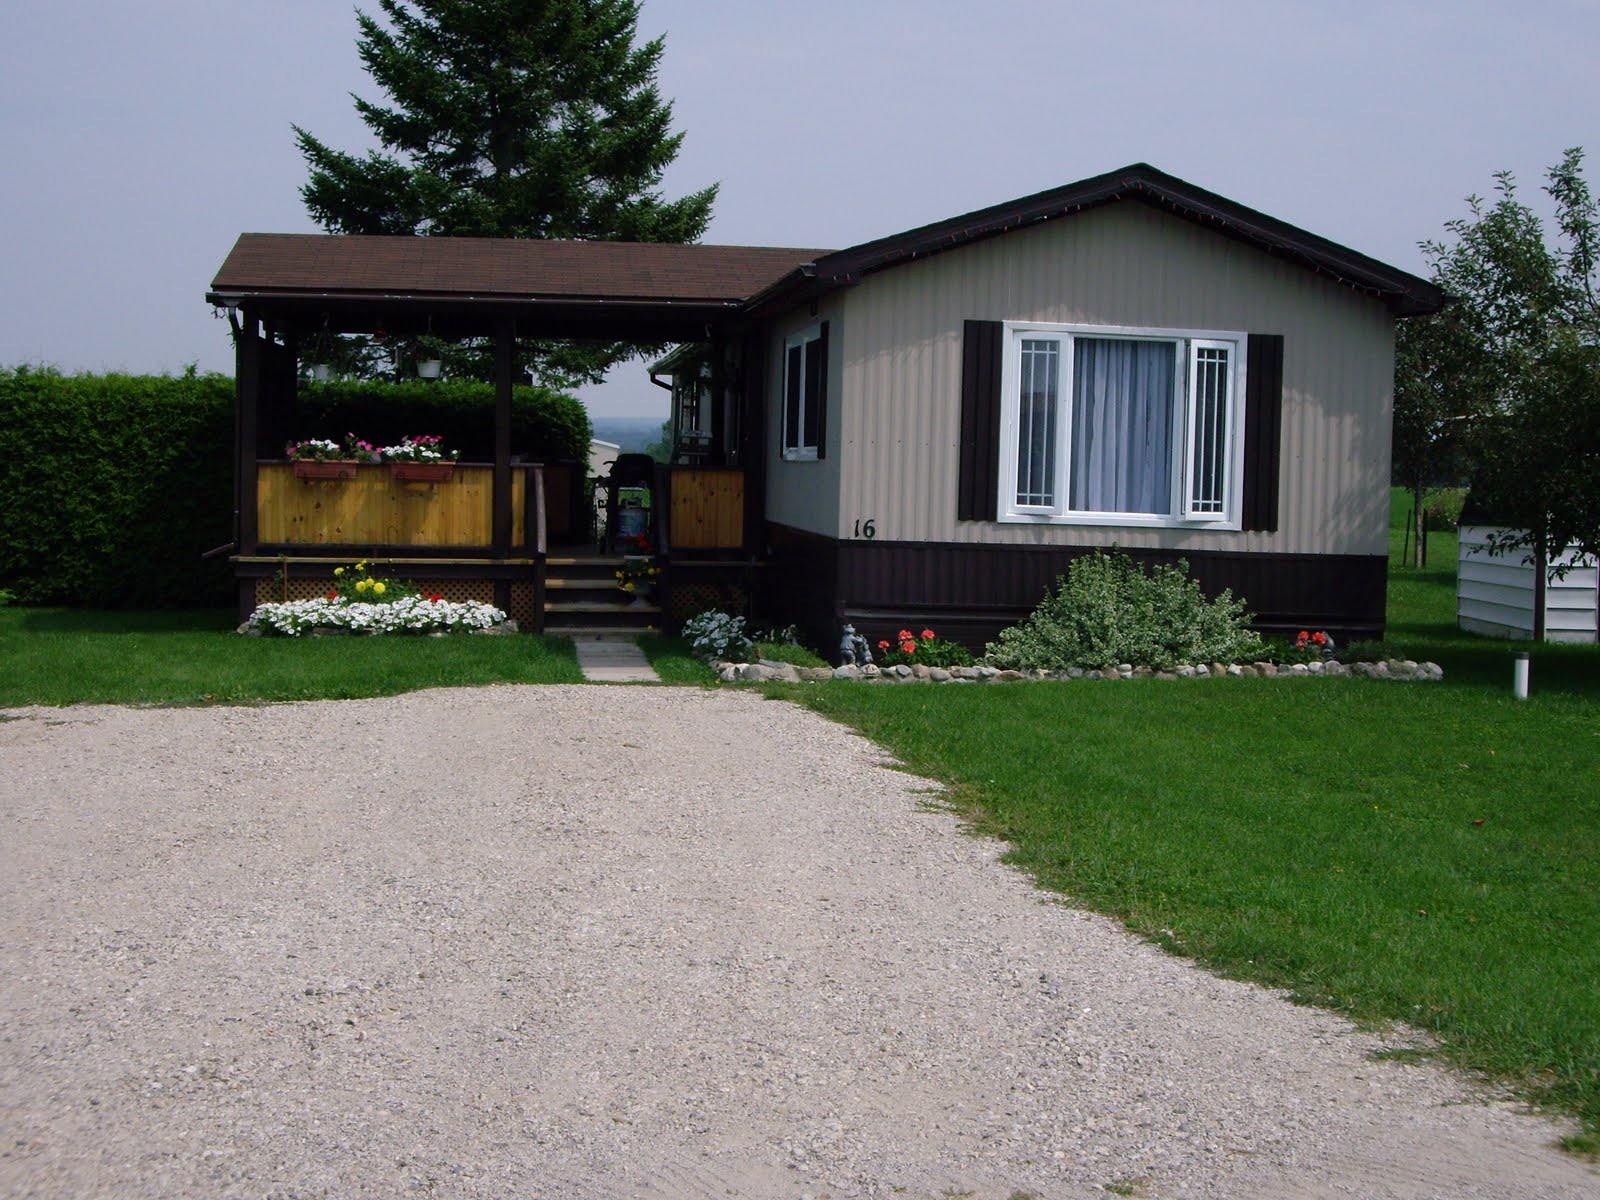 Excellent Mobile Home Exterior Design Ideas 1600 x 1200 · 323 kB · jpeg